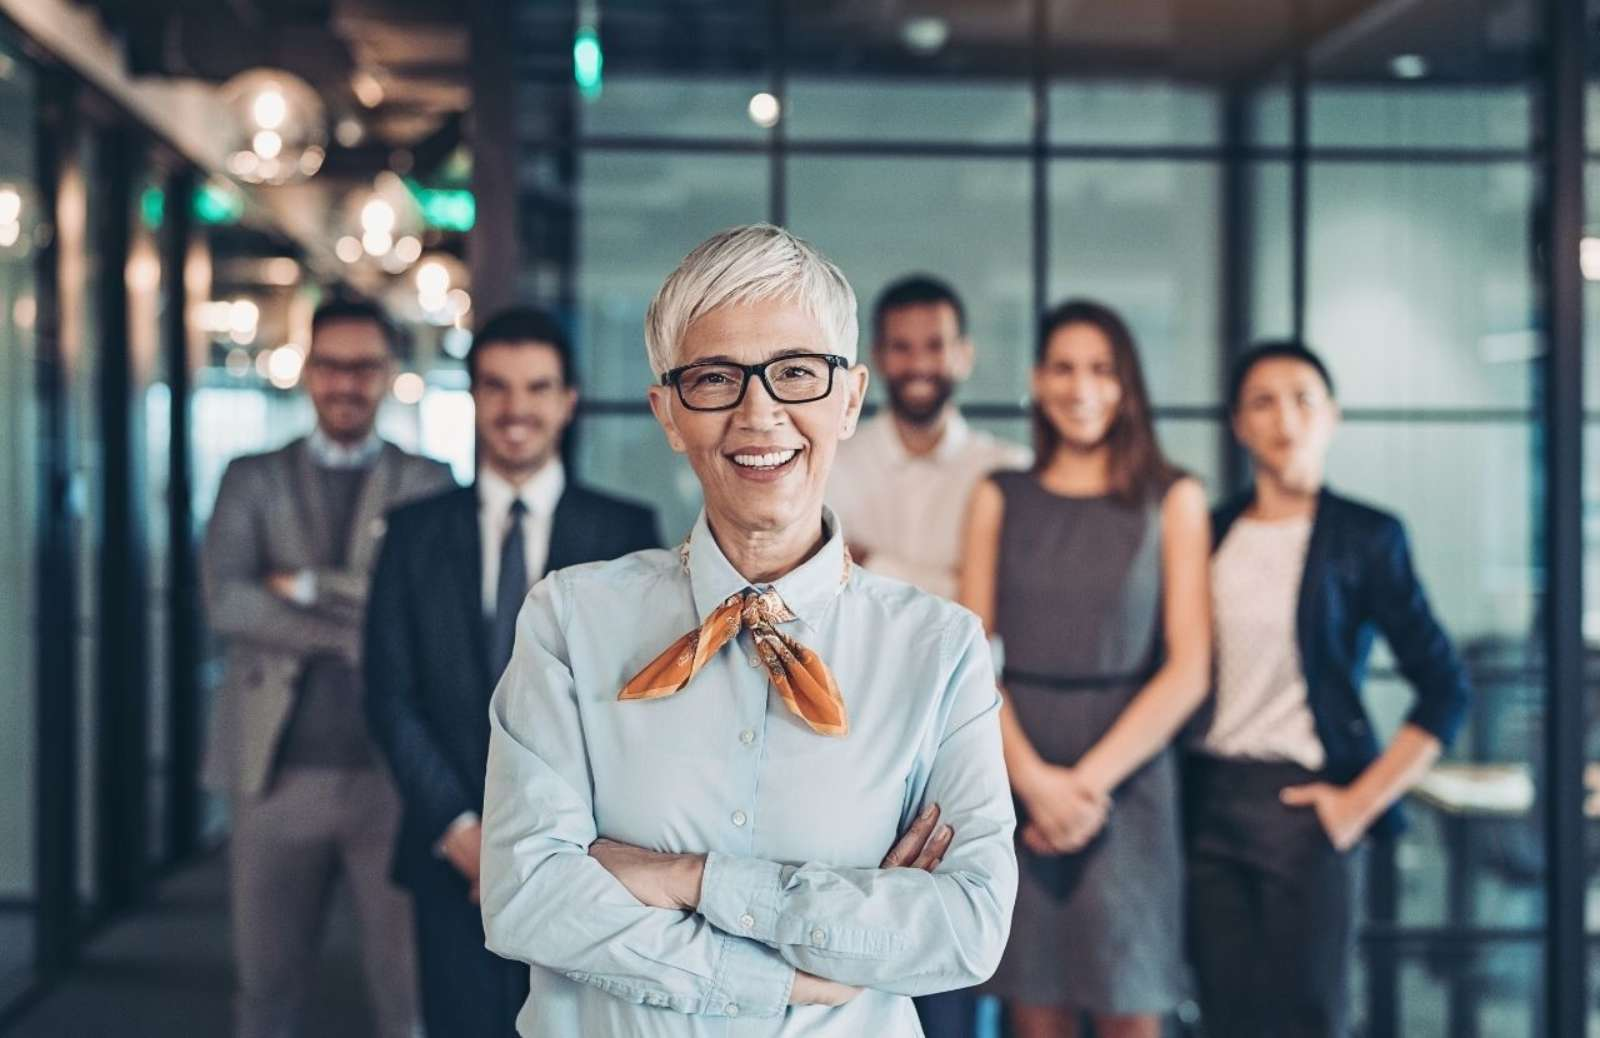 Smiling mature woman in office with coworkers in line behind her at work